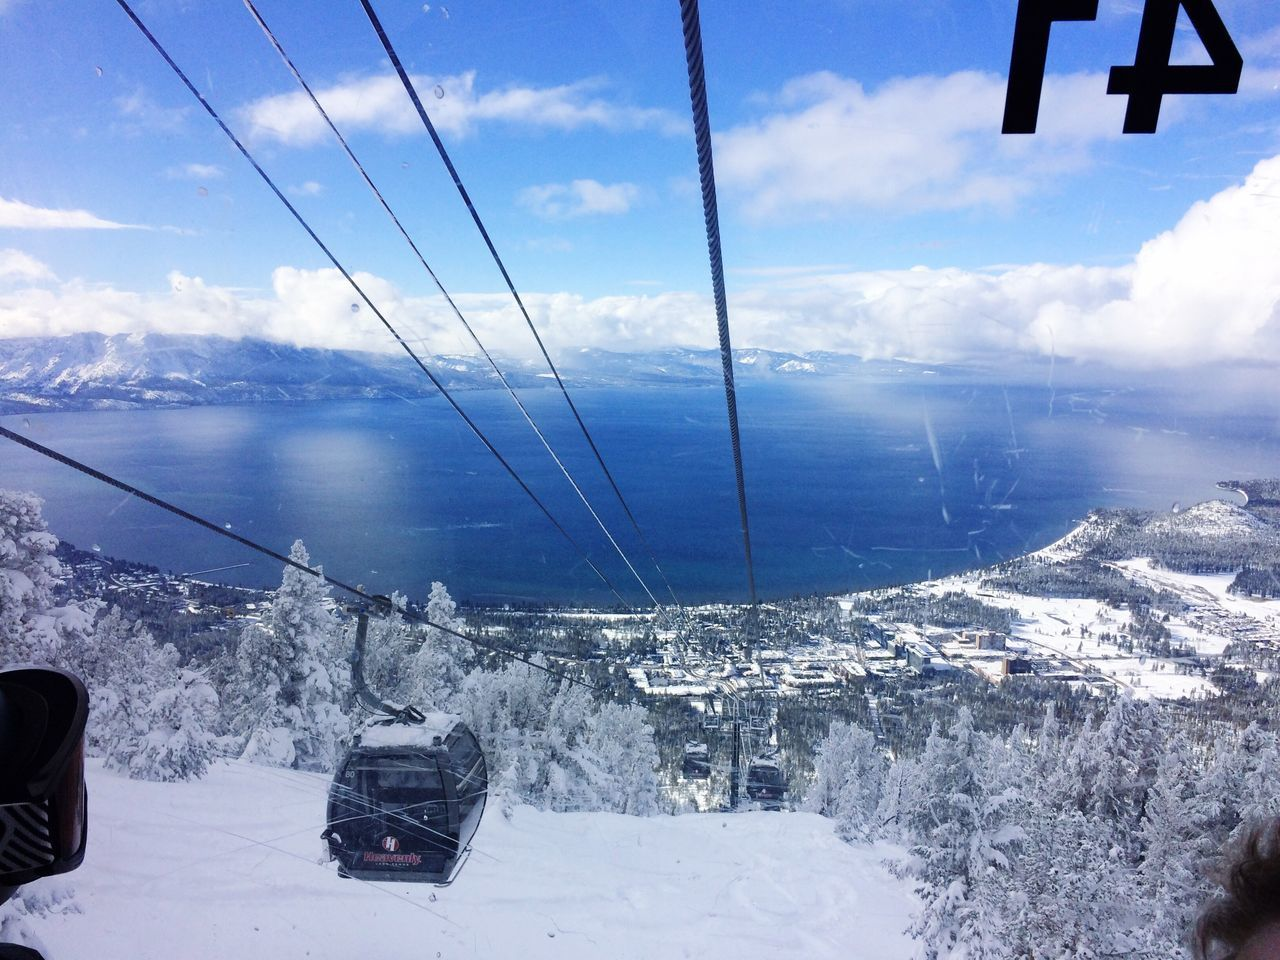 View from gondola through the crackyo/ scratched window to Lake Tahoe Snow Winter Cold Temperature Sky Weather Transportation Mountain Beauty In Nature Mode Of Transport Steel Cable IPhone 5 Photography Sierra Nevada Mountains Blue Sky Outdoors Heavenly Ski Resort